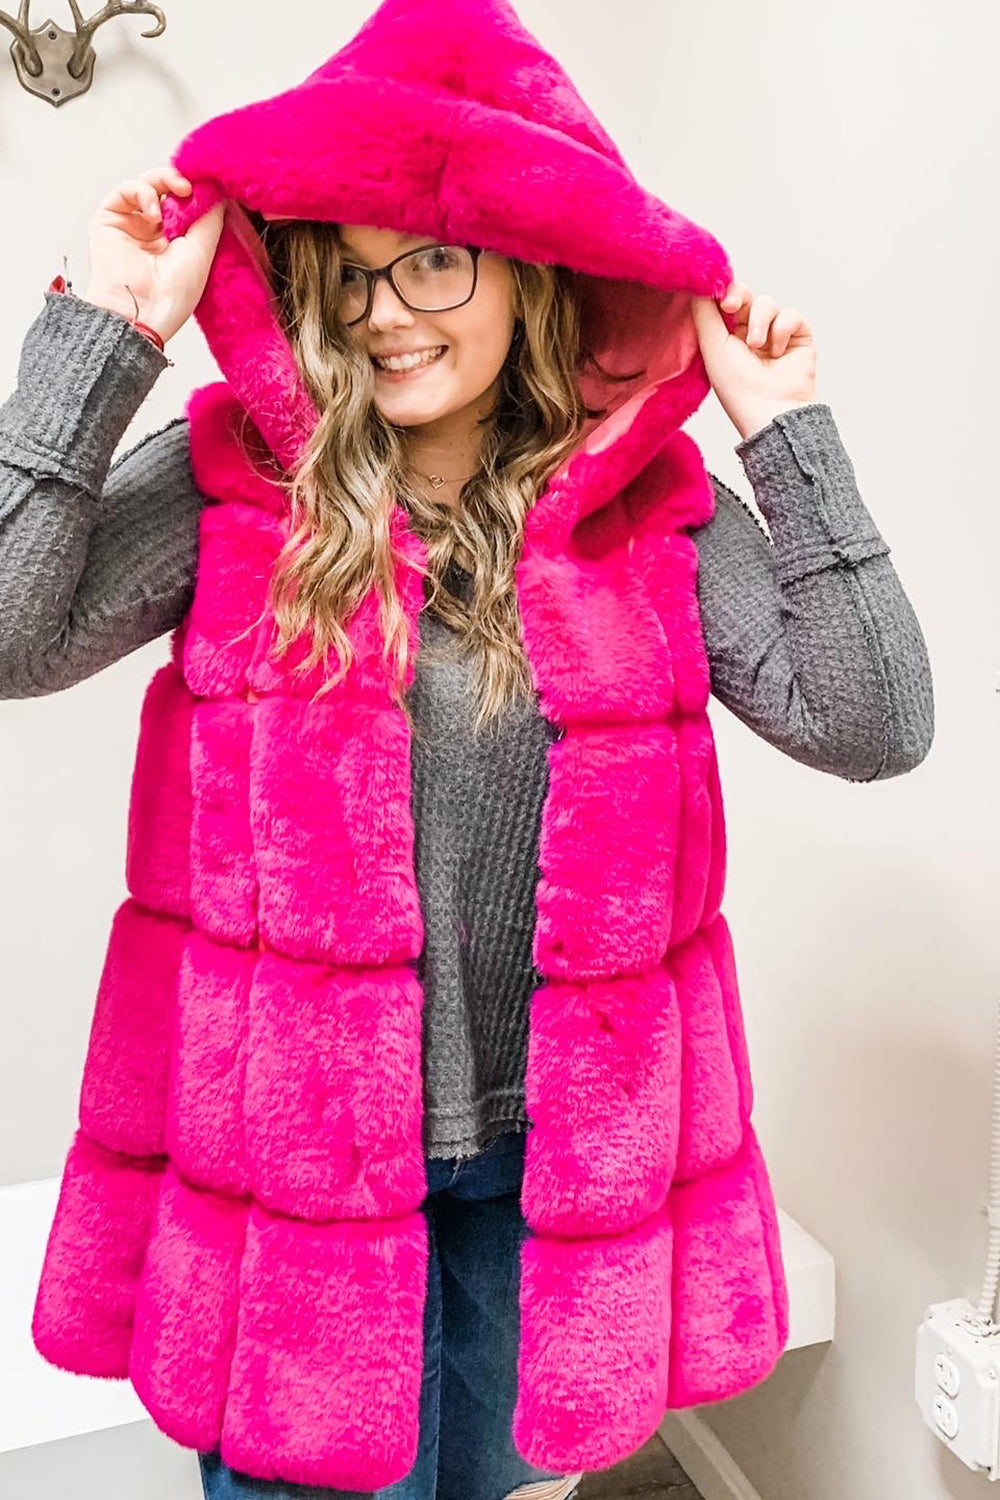 Hurley Hooded Vest - Hot Pink